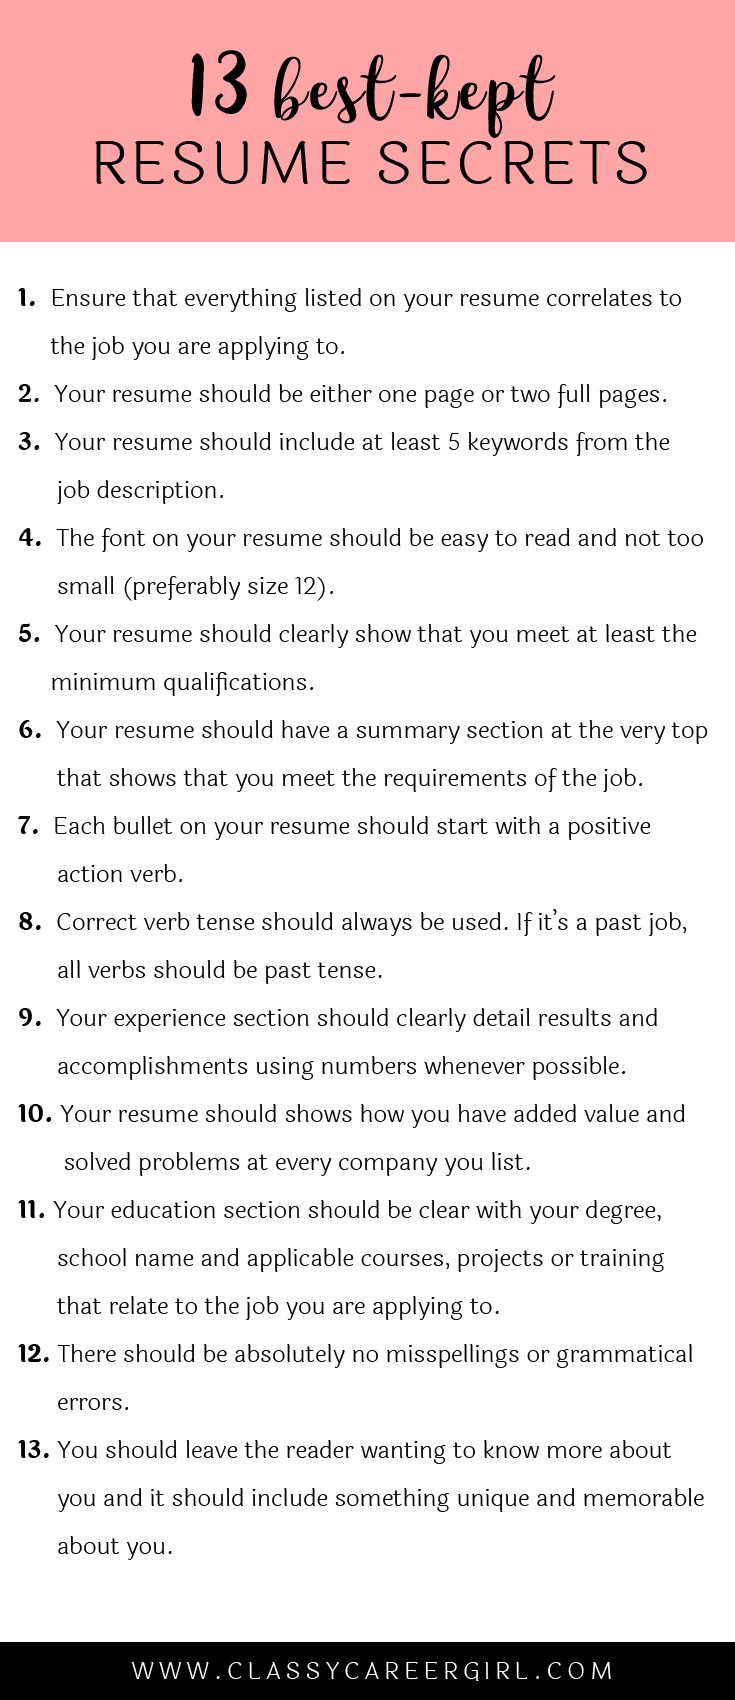 Opposenewapstandardsus  Outstanding  Ideas About Resume On Pinterest  Cv Format Resume Cv And  With Glamorous Some Hiring Managers Will Toss Your Resume Out If You Dont Know These  With Awesome Skills For Receptionist Resume Also Sample Resume For Retail Sales In Addition Career Counselor Resume And Er Rn Resume As Well As Resume Template Modern Additionally First Year Teacher Resume Examples From Pinterestcom With Opposenewapstandardsus  Glamorous  Ideas About Resume On Pinterest  Cv Format Resume Cv And  With Awesome Some Hiring Managers Will Toss Your Resume Out If You Dont Know These  And Outstanding Skills For Receptionist Resume Also Sample Resume For Retail Sales In Addition Career Counselor Resume From Pinterestcom